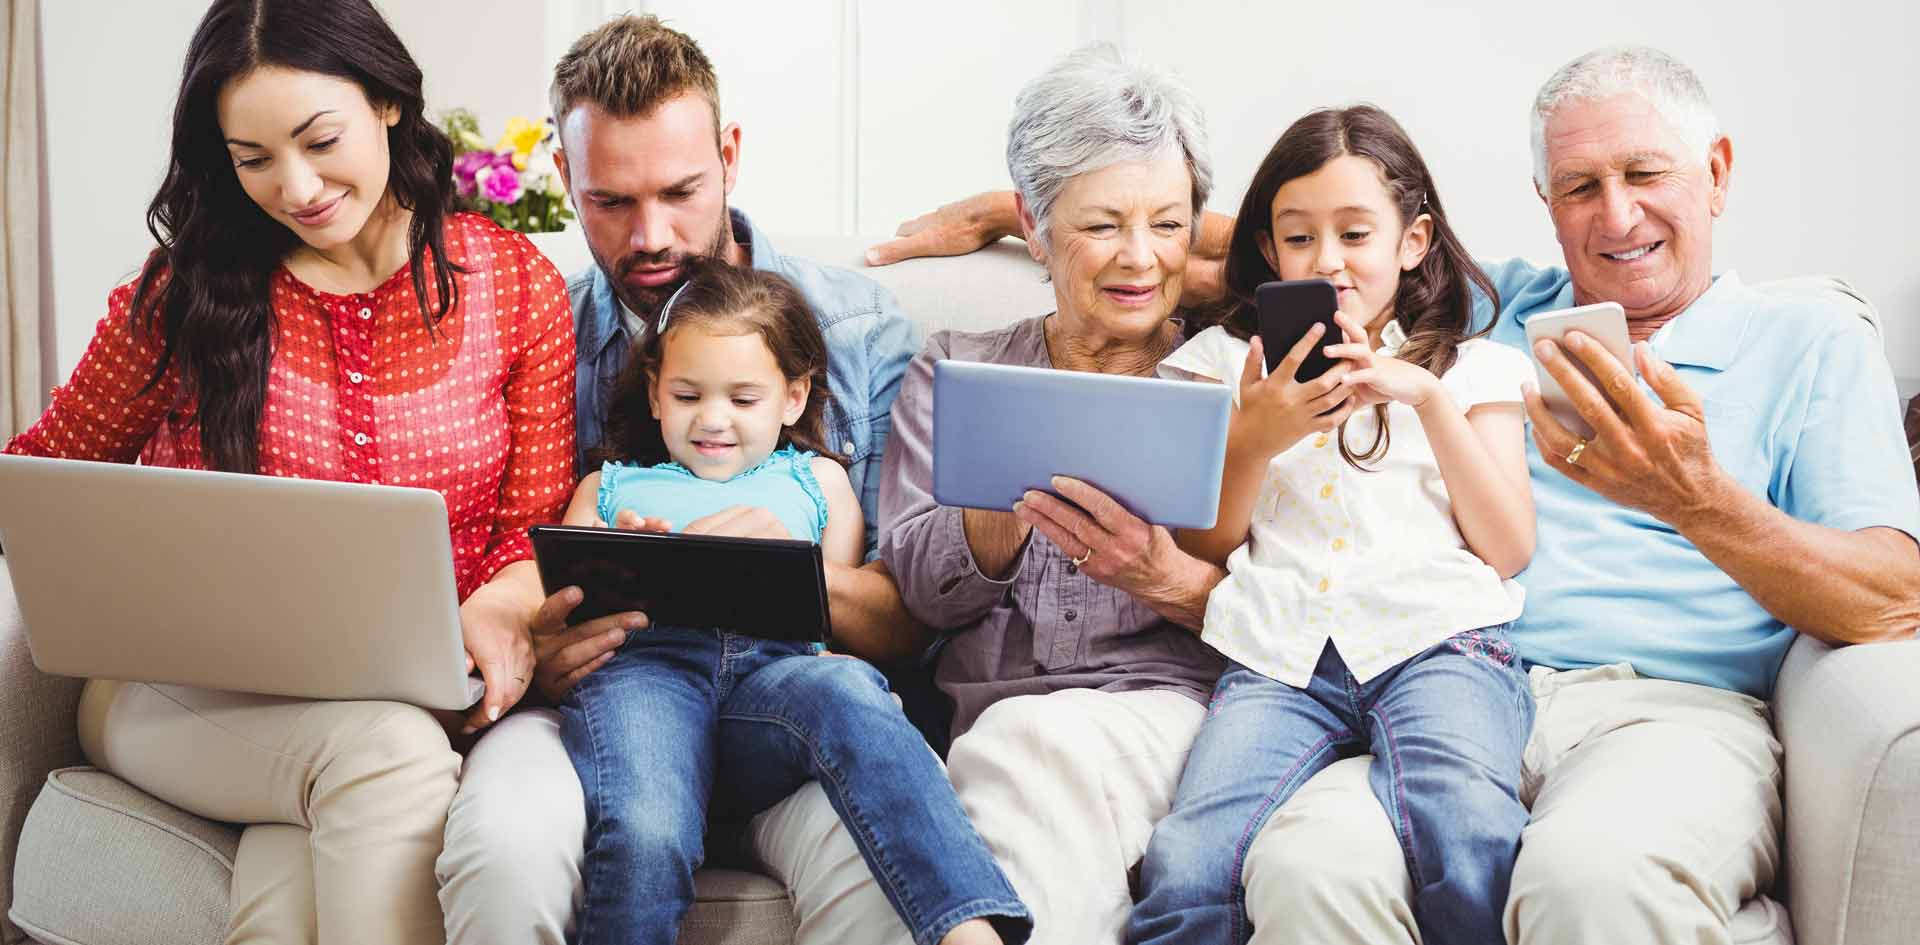 Multi-generational family sitting and interacting together on a variety of devices